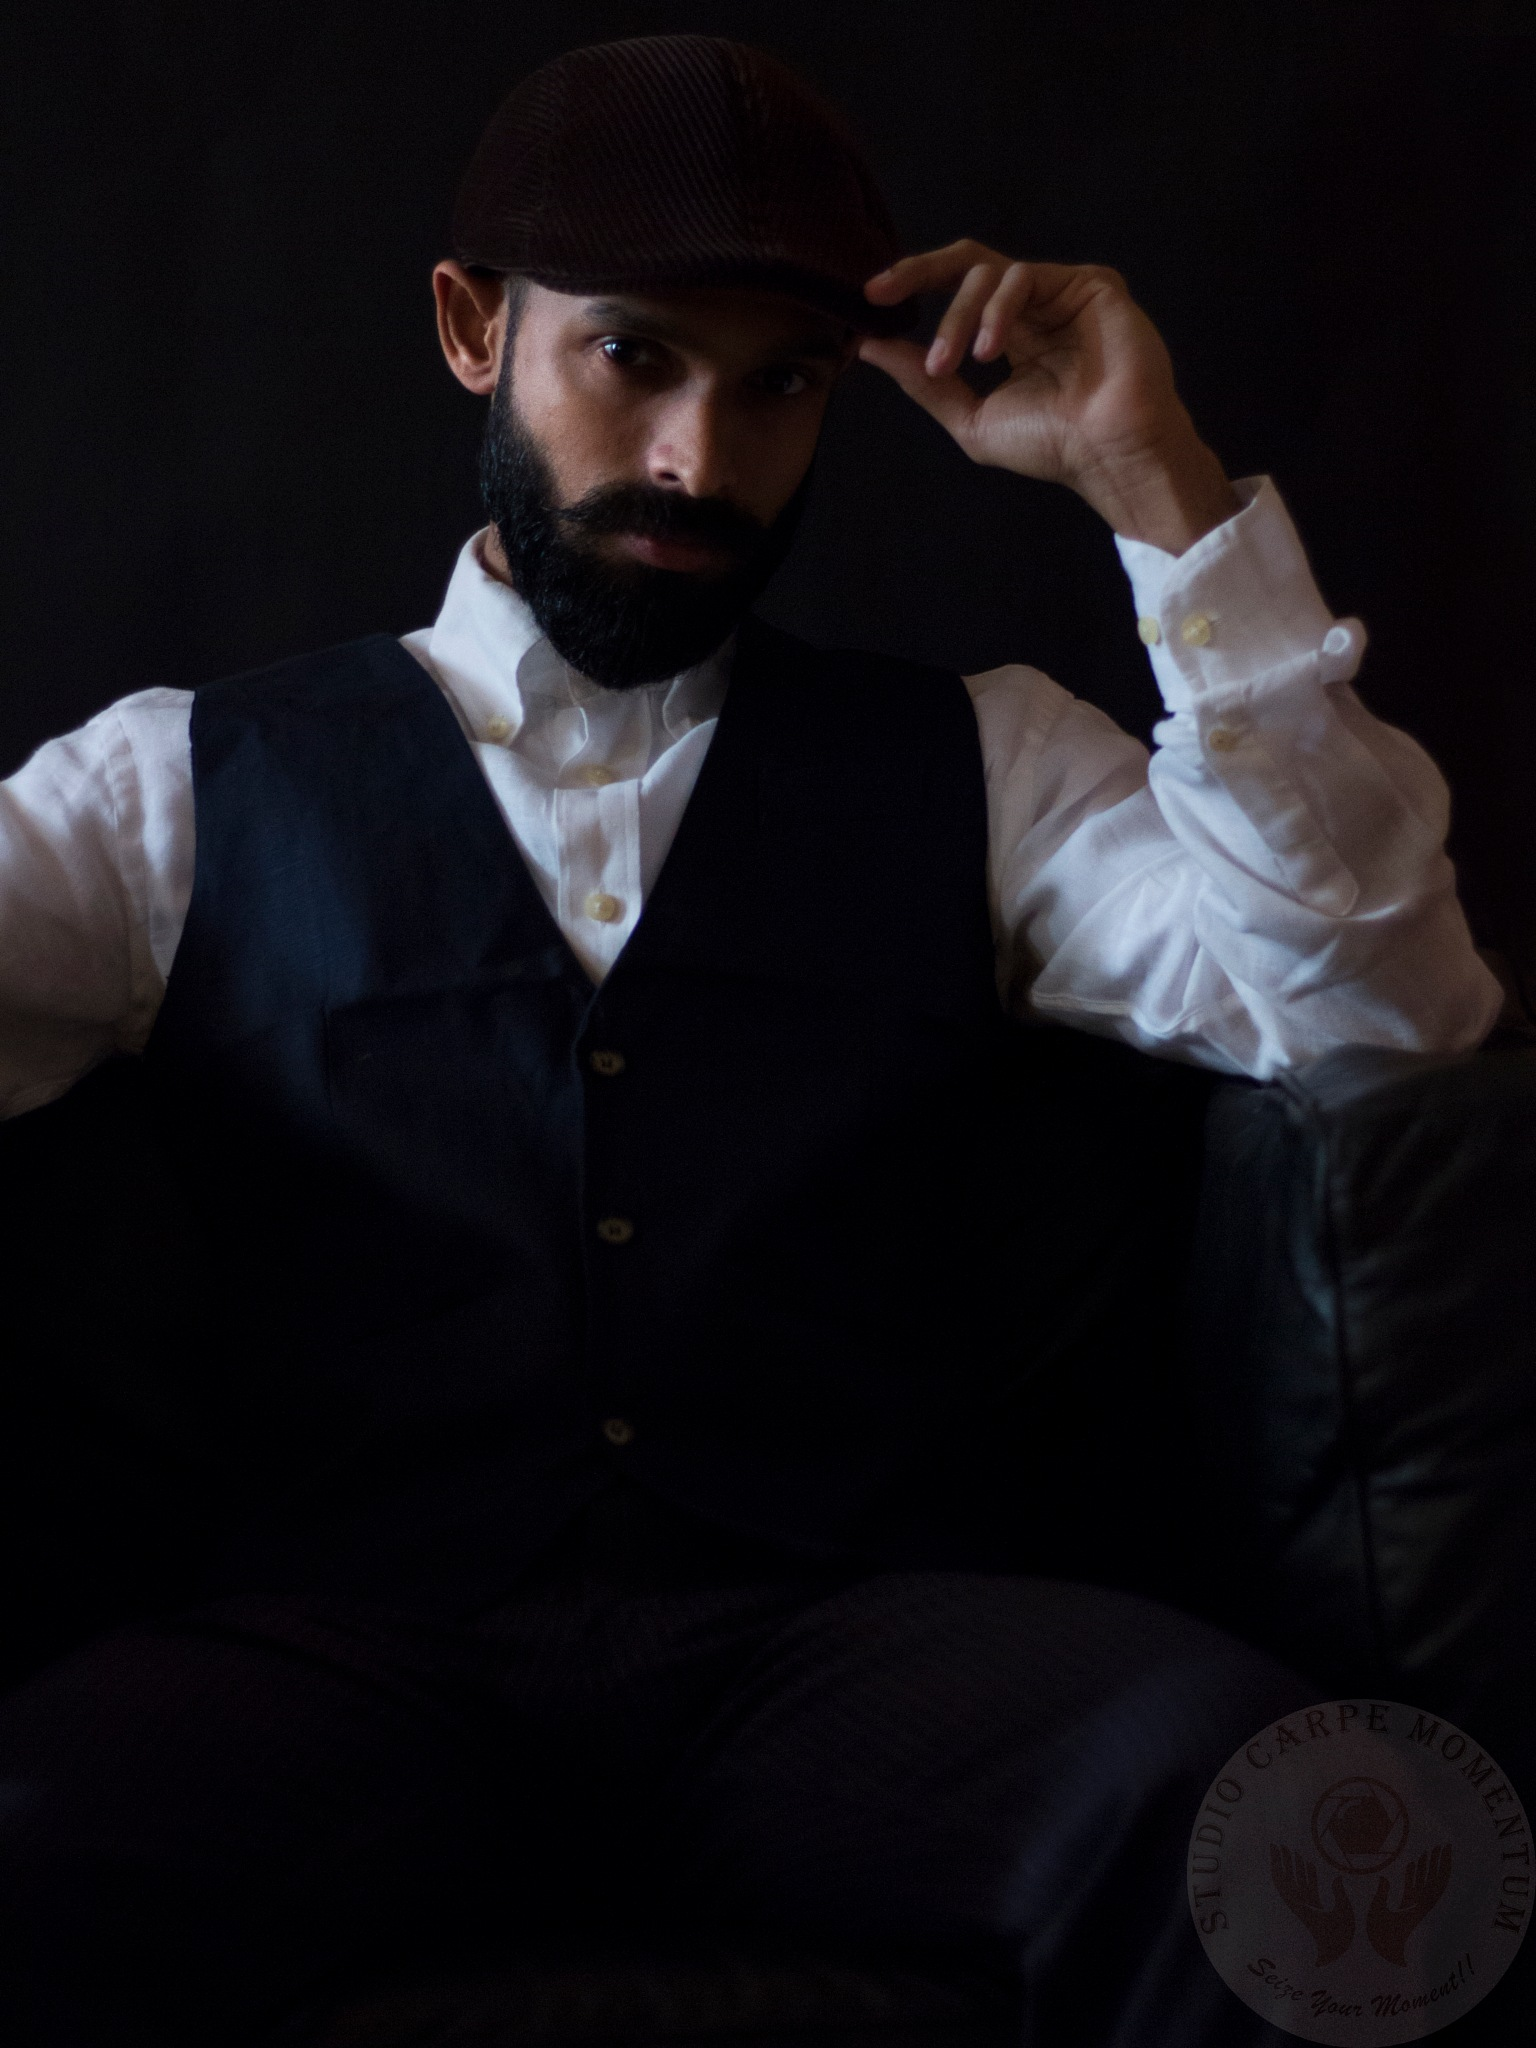 The classic man by Susmith Suresh